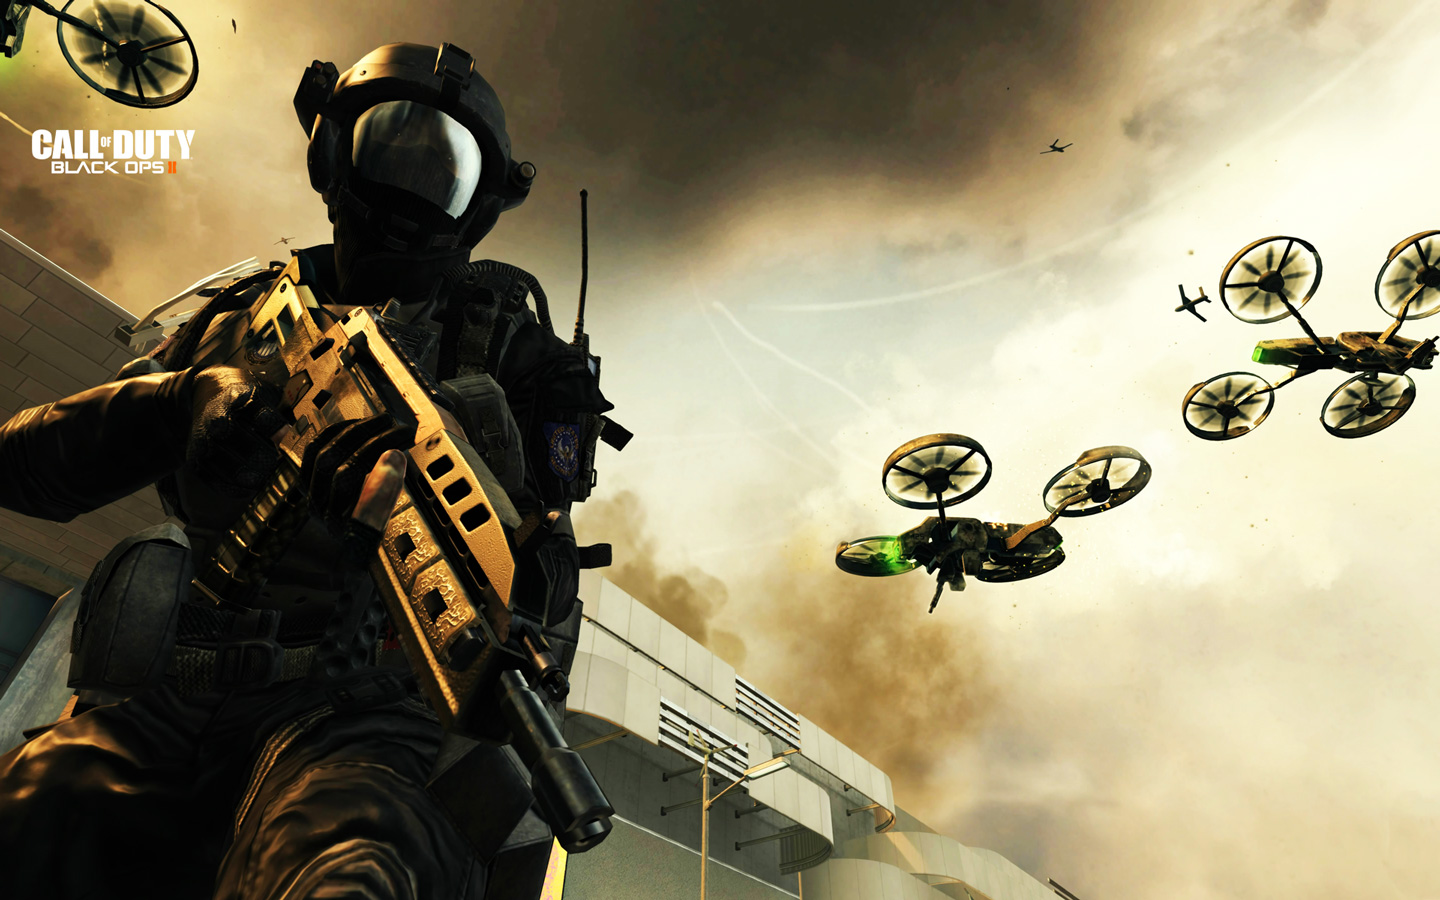 Call of Duty: Black Ops 2 Wallpaper in 1440x900